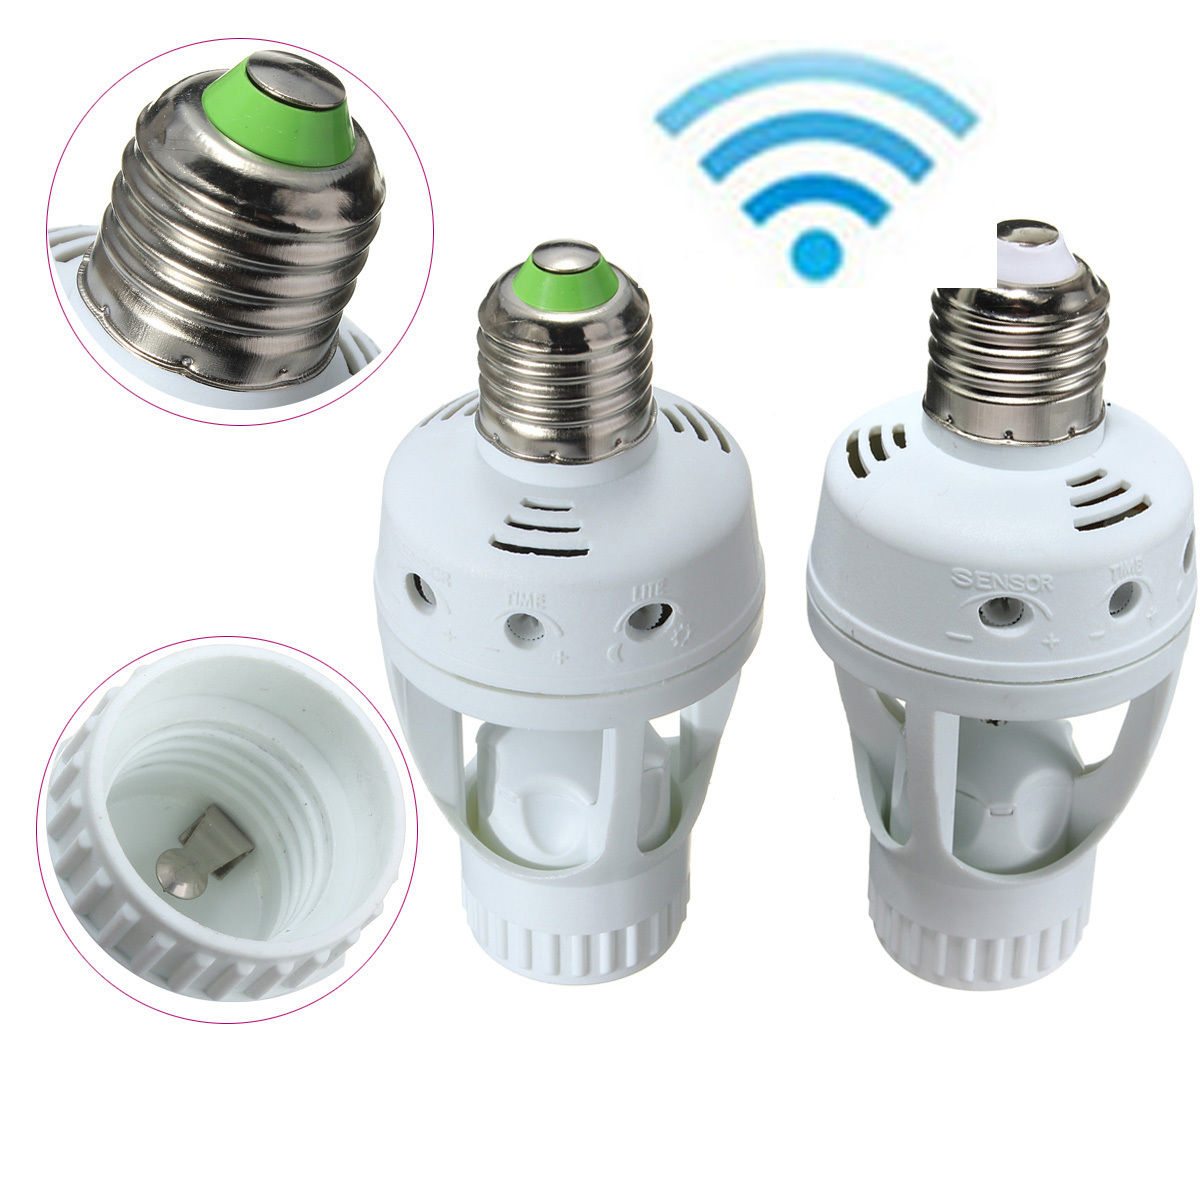 E27 Led Light Lamp Bulb Holder Socket Switch Infrared Pir Motion Sensor 110 220v Ebay Home Garden Light Sensor Lamp Bulb E27 Led